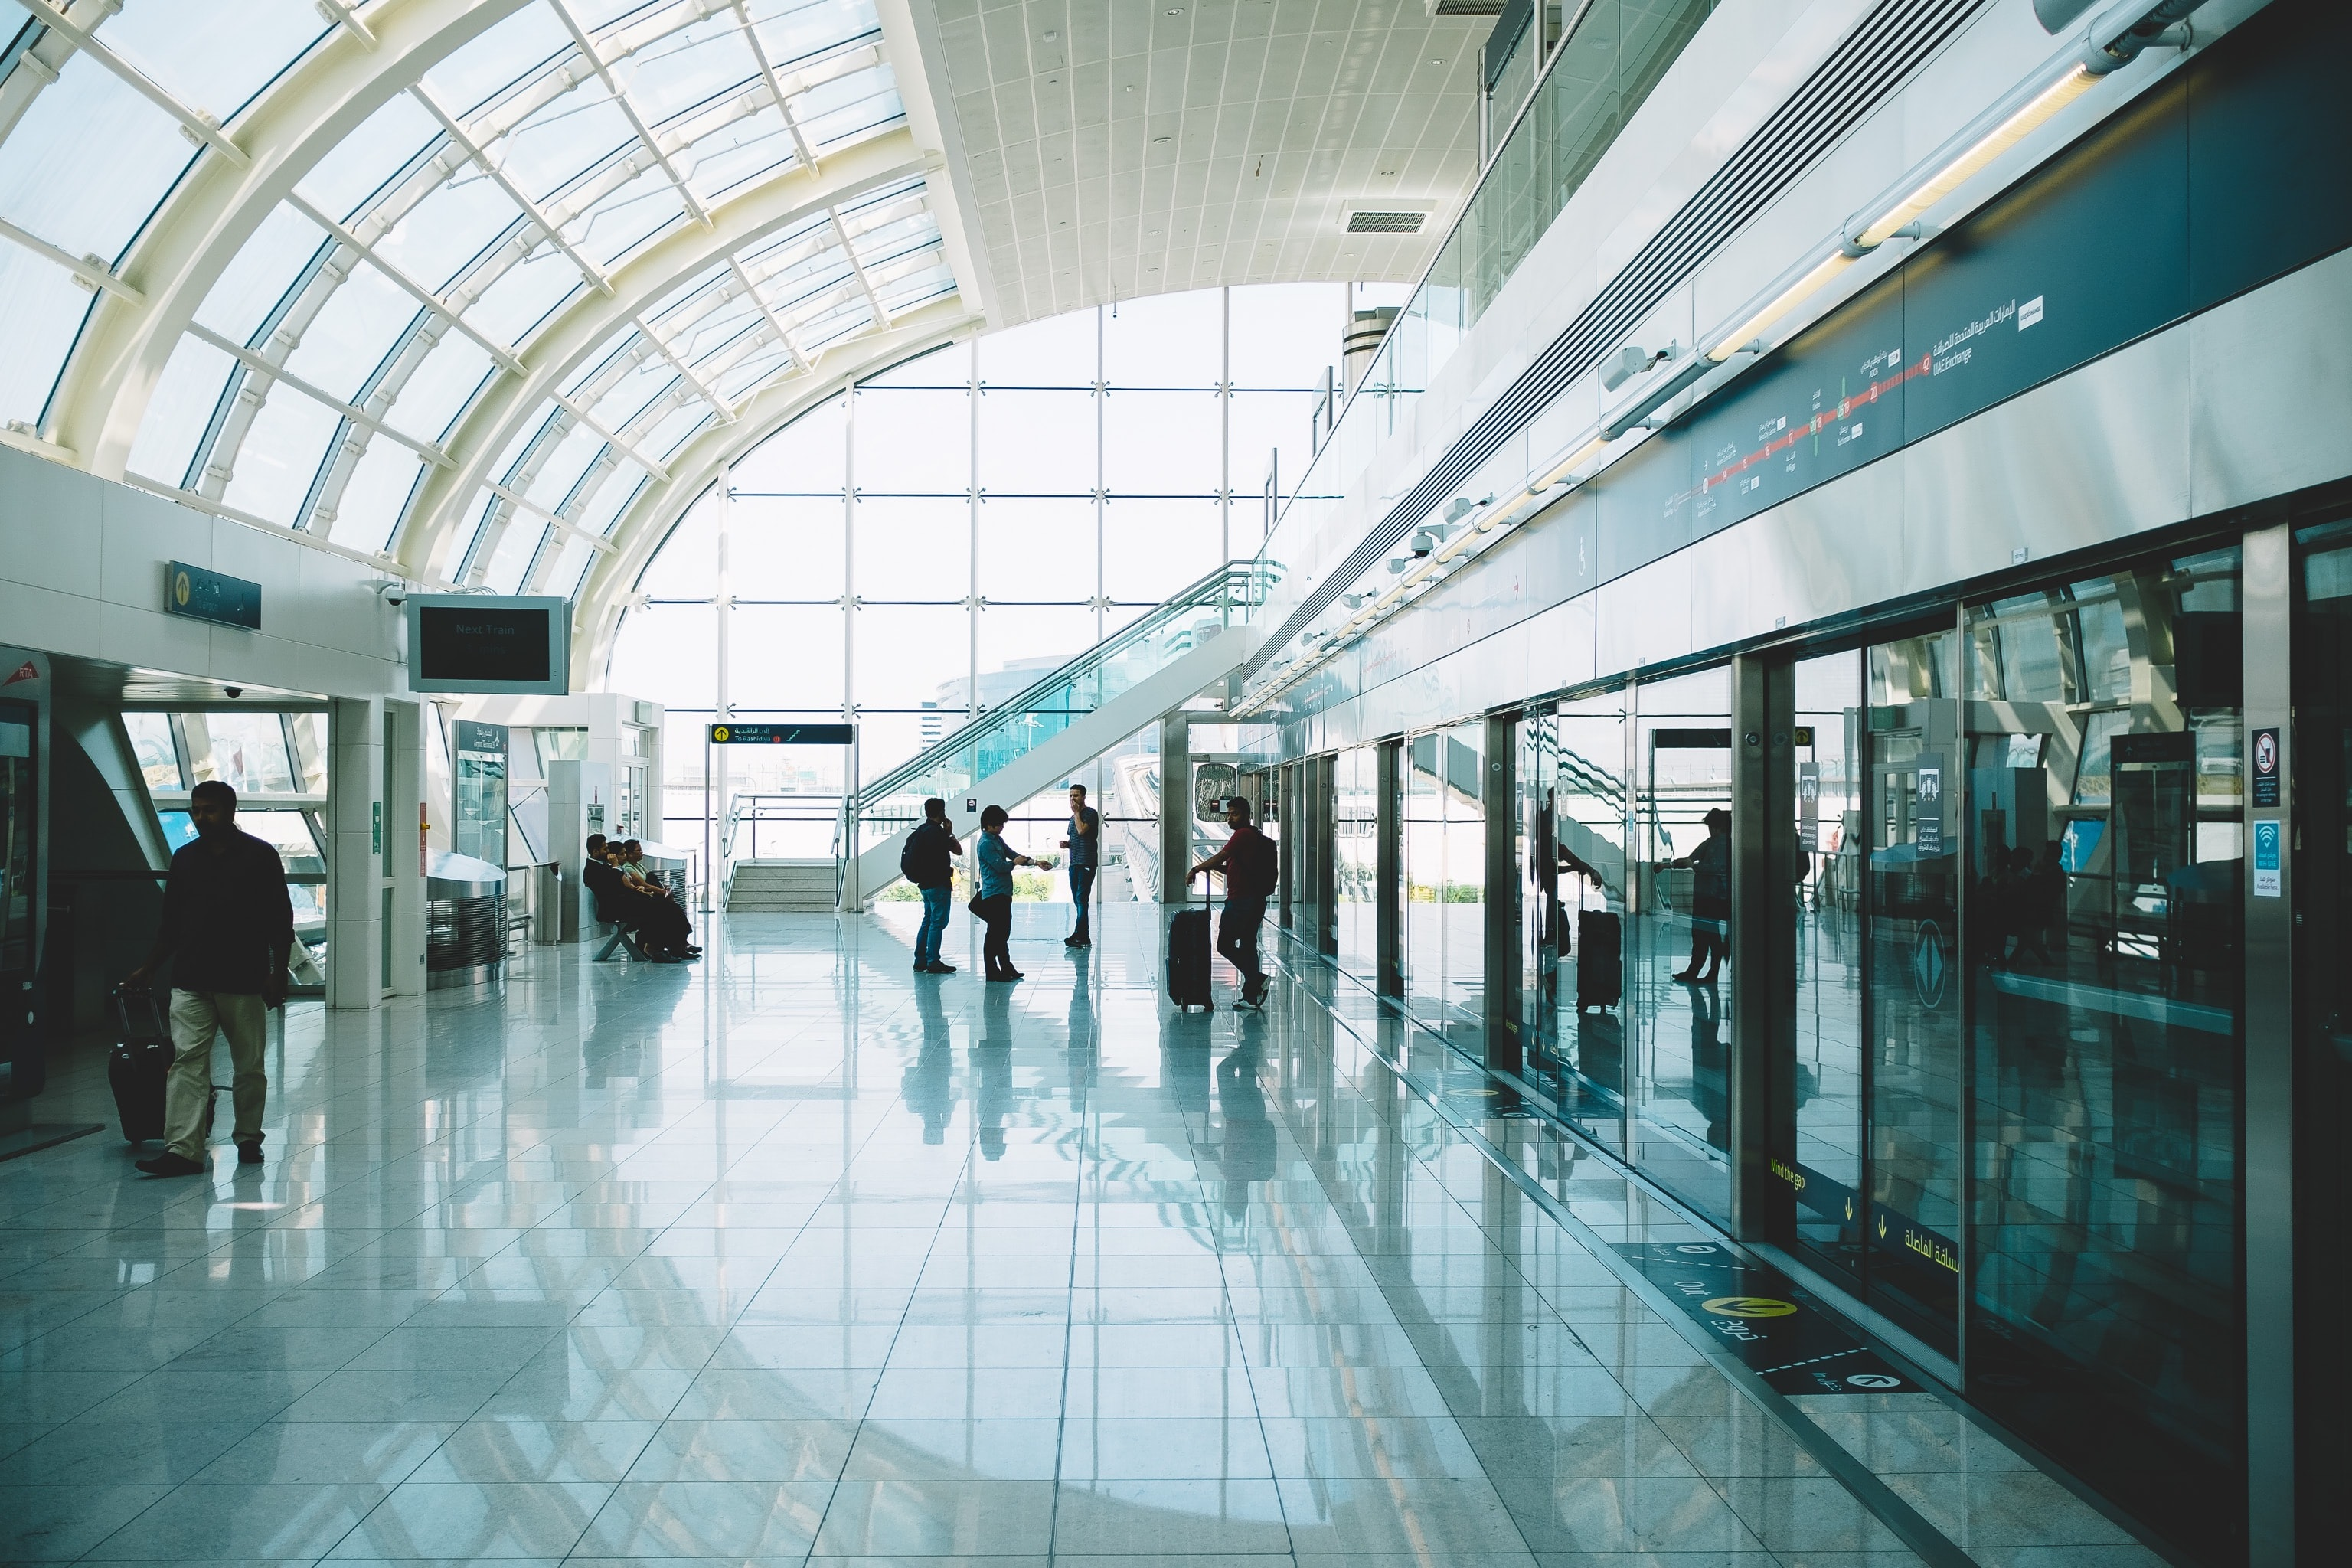 People on a glossy floor in an airport in Dubai